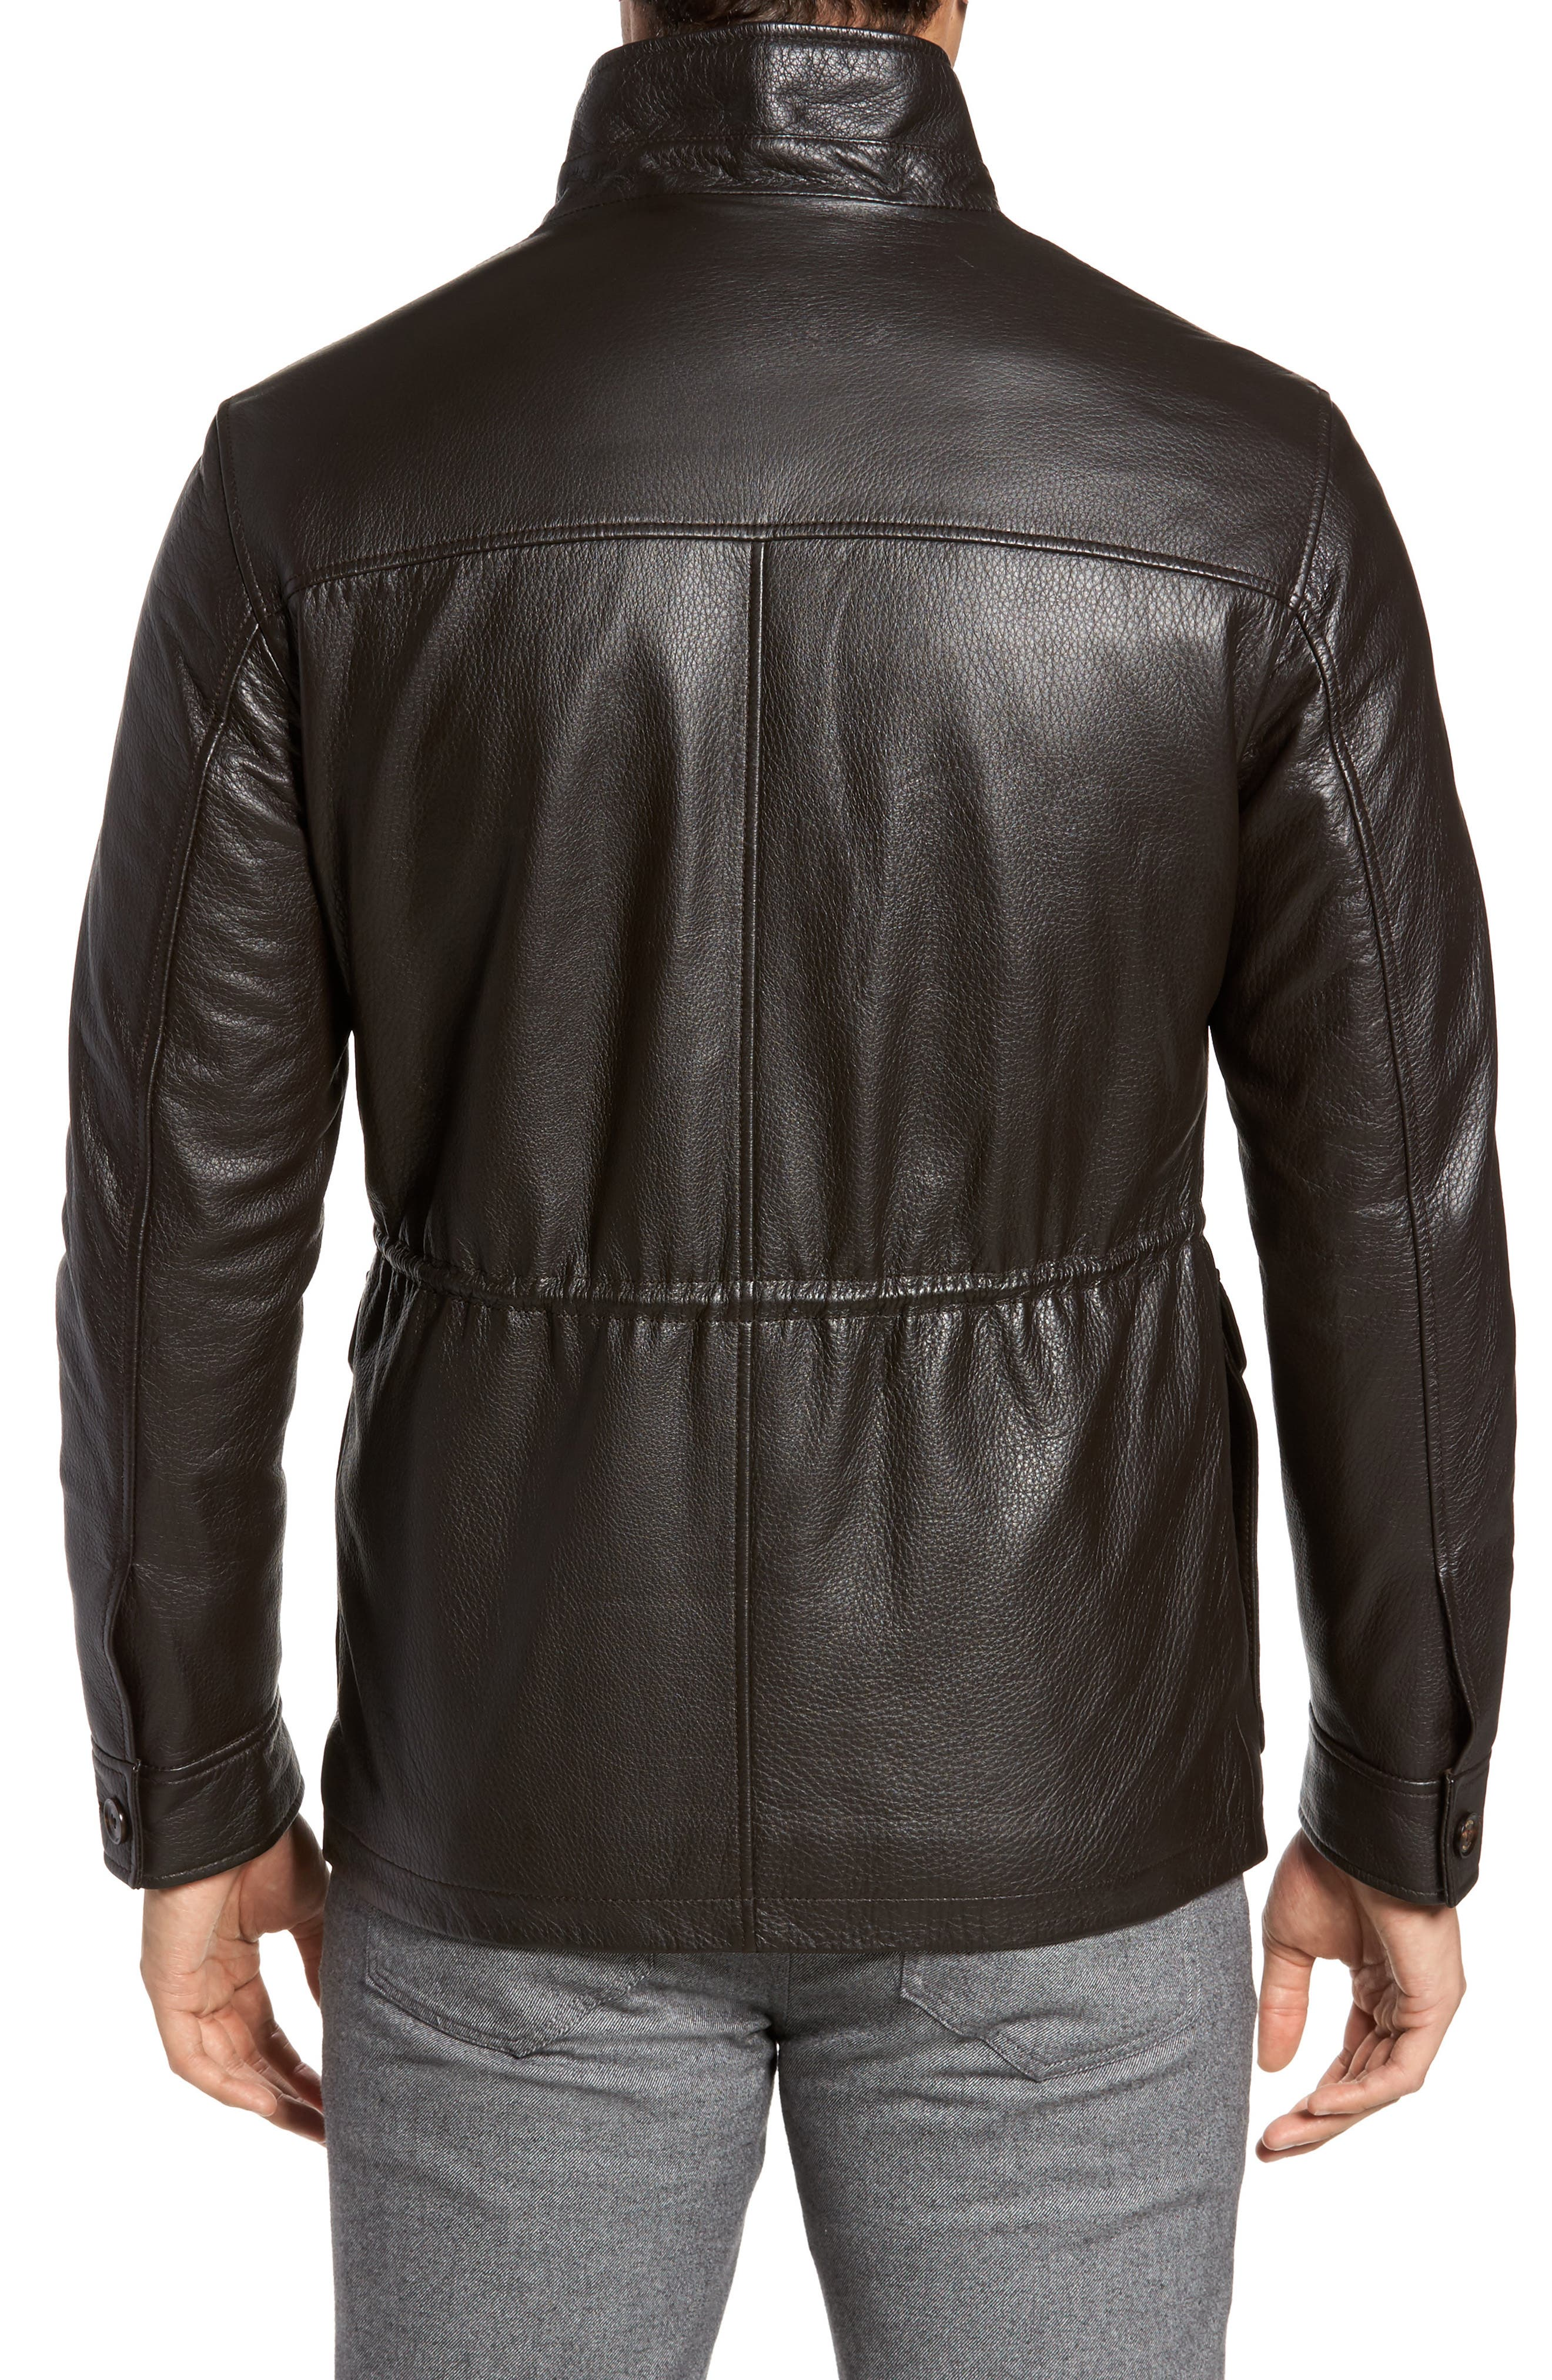 Woodland Discovery Deerskin Leather Jacket,                             Alternate thumbnail 2, color,                             Espresso